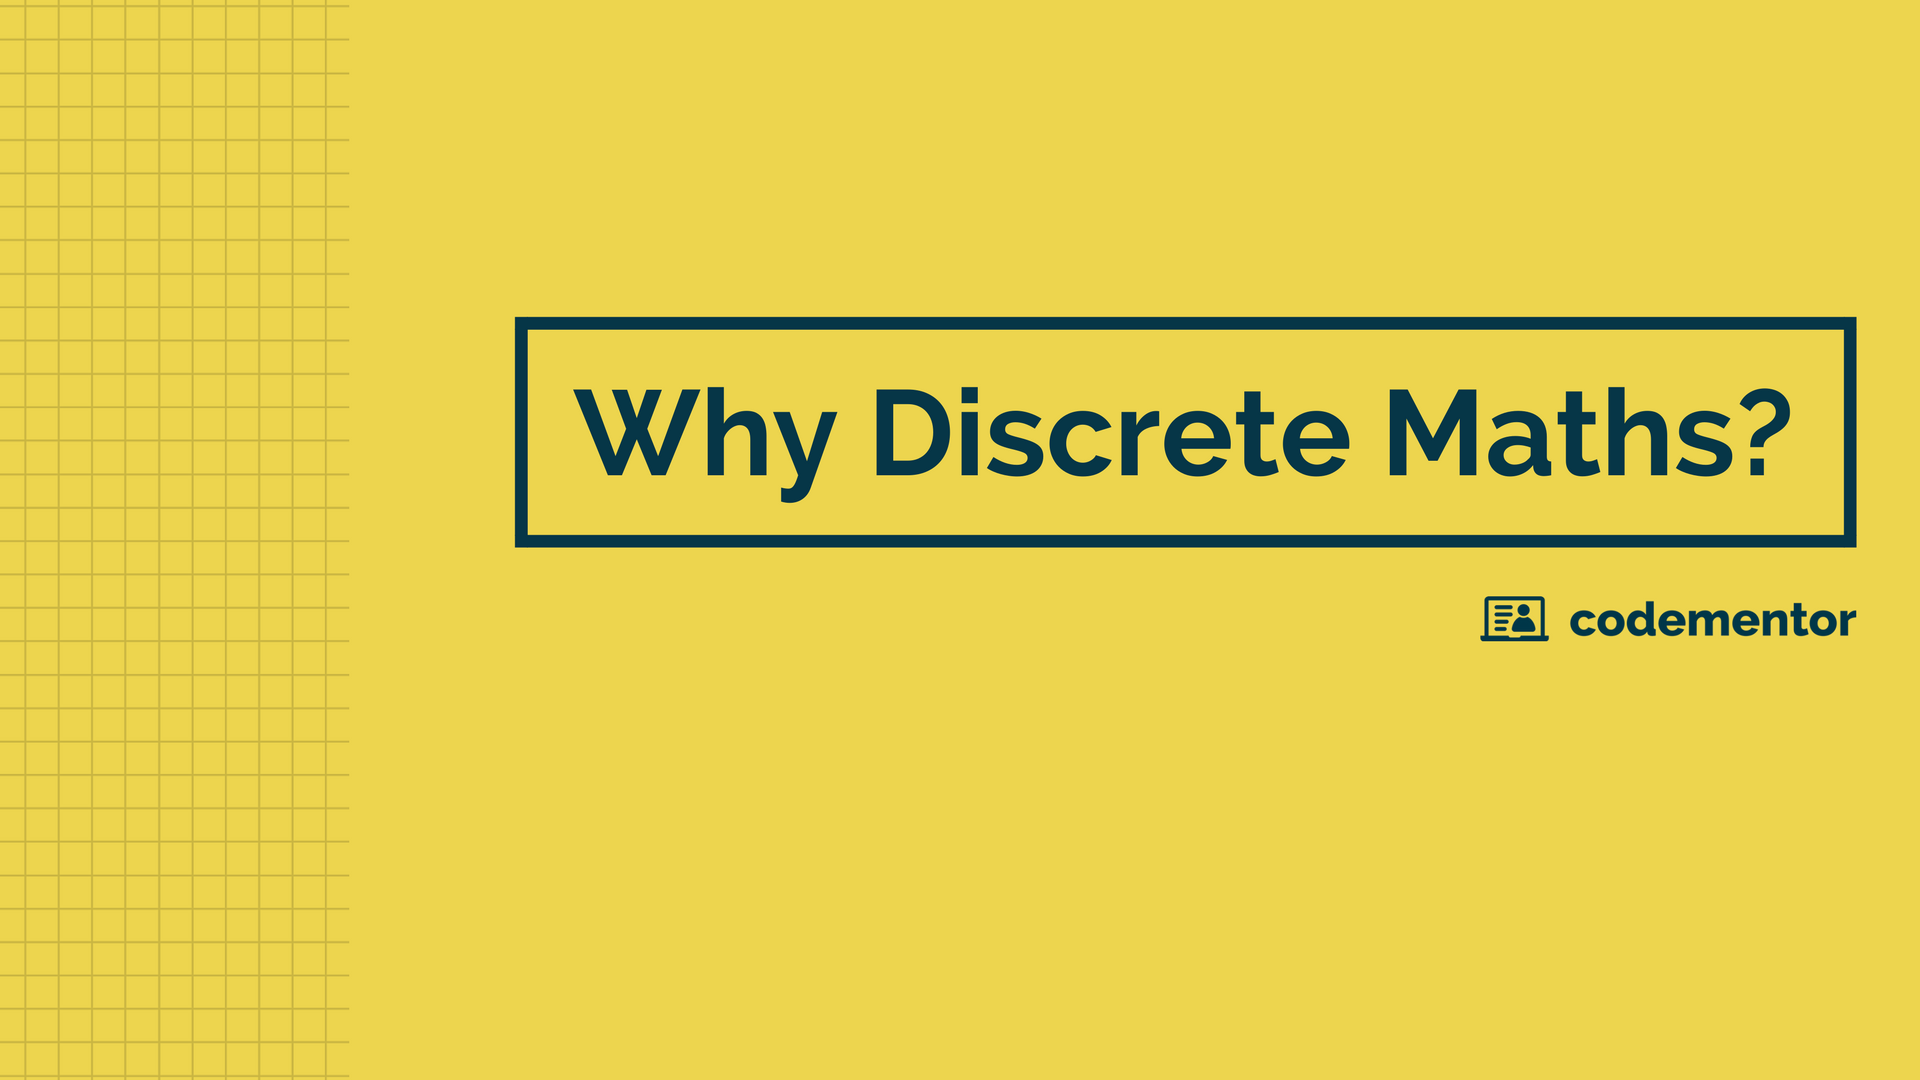 Why Discrete Maths?